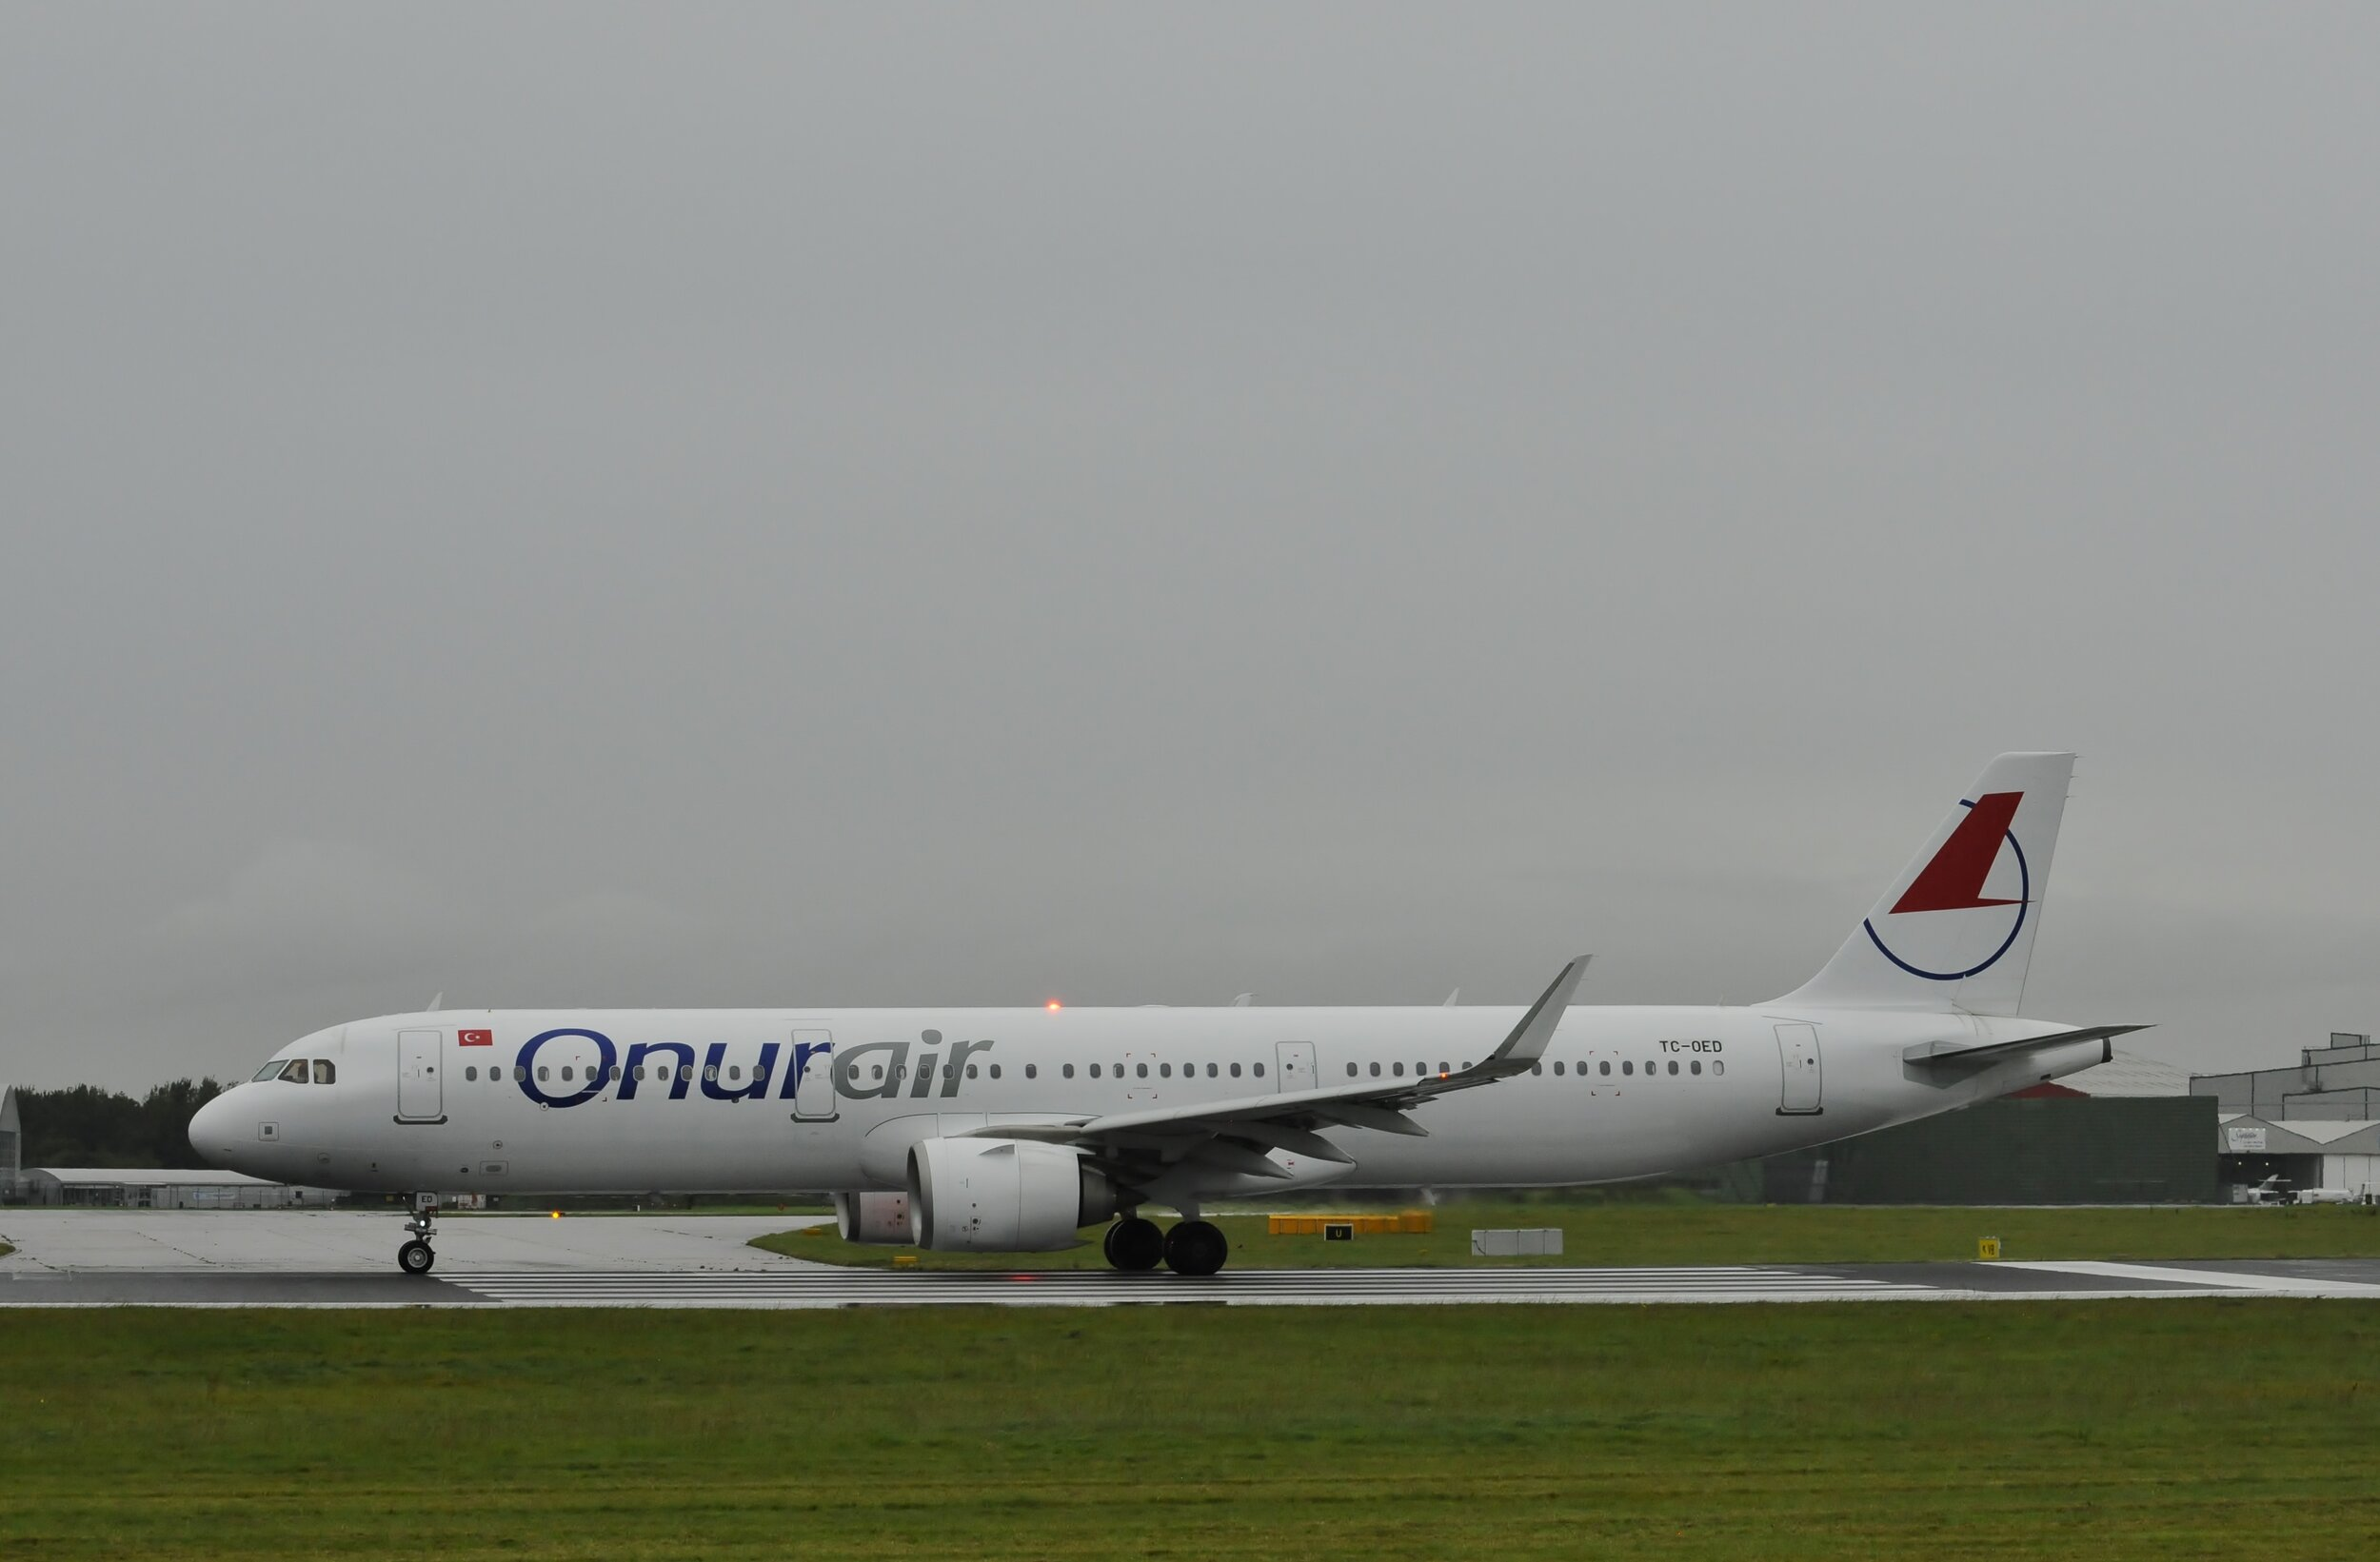 Onur Air A321 TC-OED at Manchester 26th September 2019. With thanks to Darren Moston